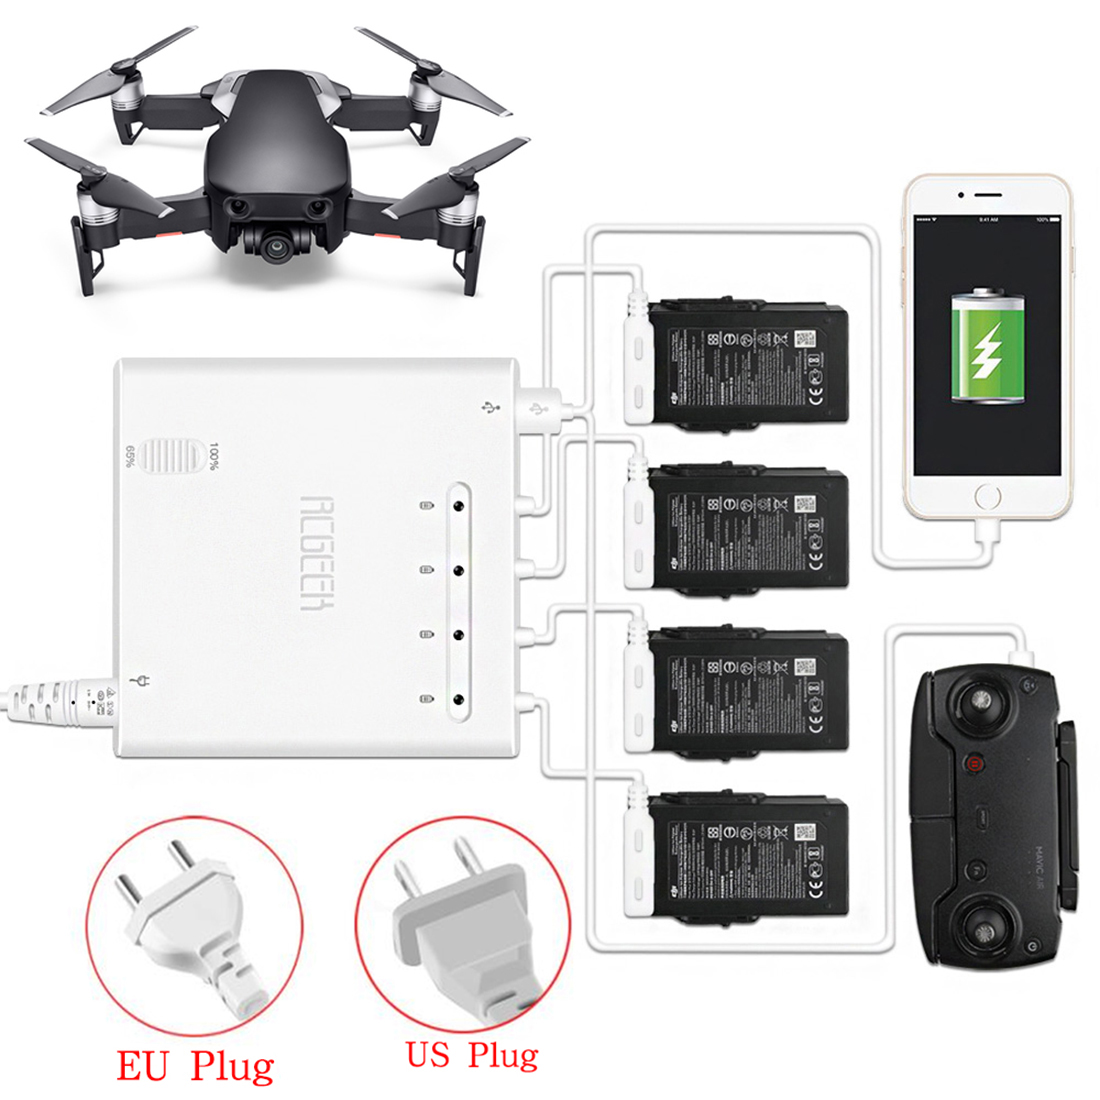 6 in 1 Quick Charge Intelligent Charger with 2 Charging Modes for DJI MAVIC AIR US